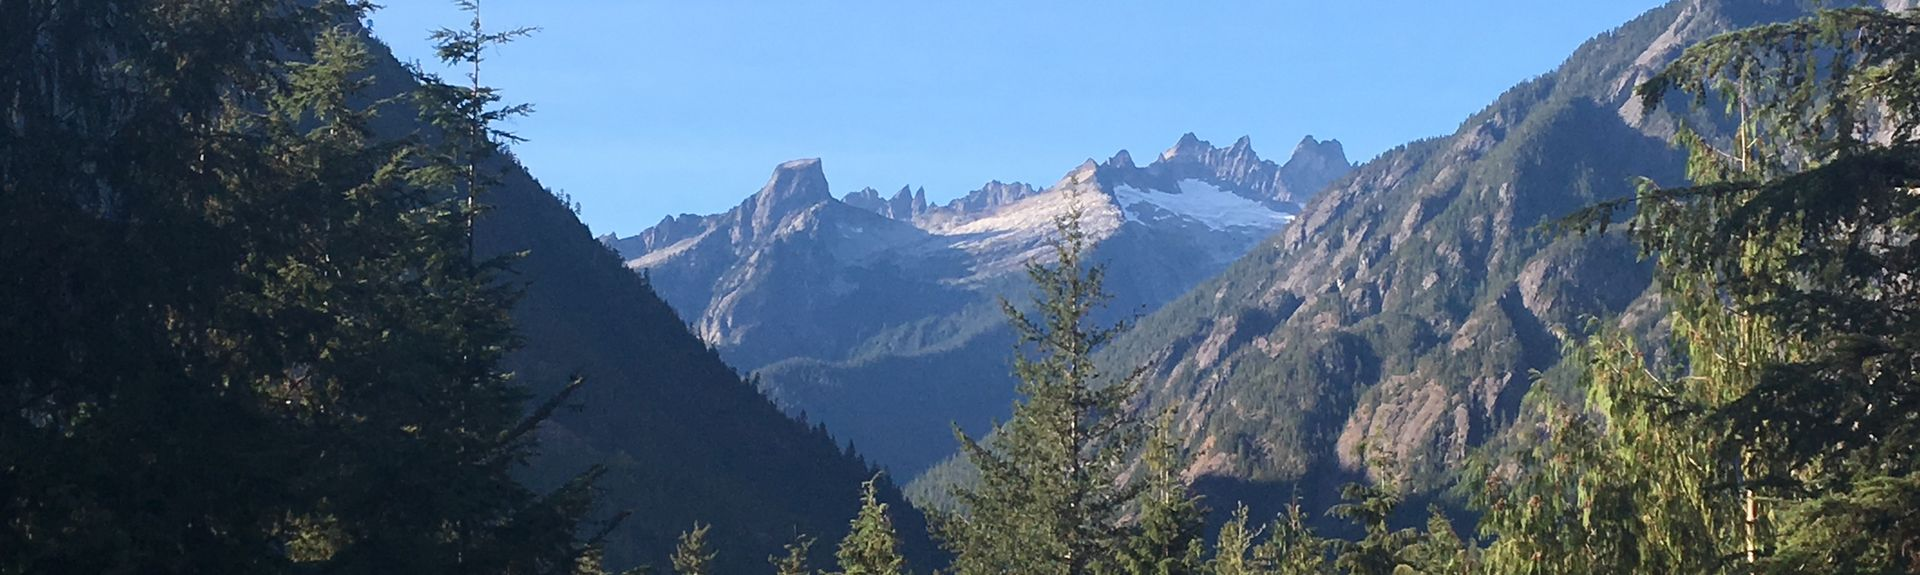 North Cascades National Park, Washington, Verenigde Staten